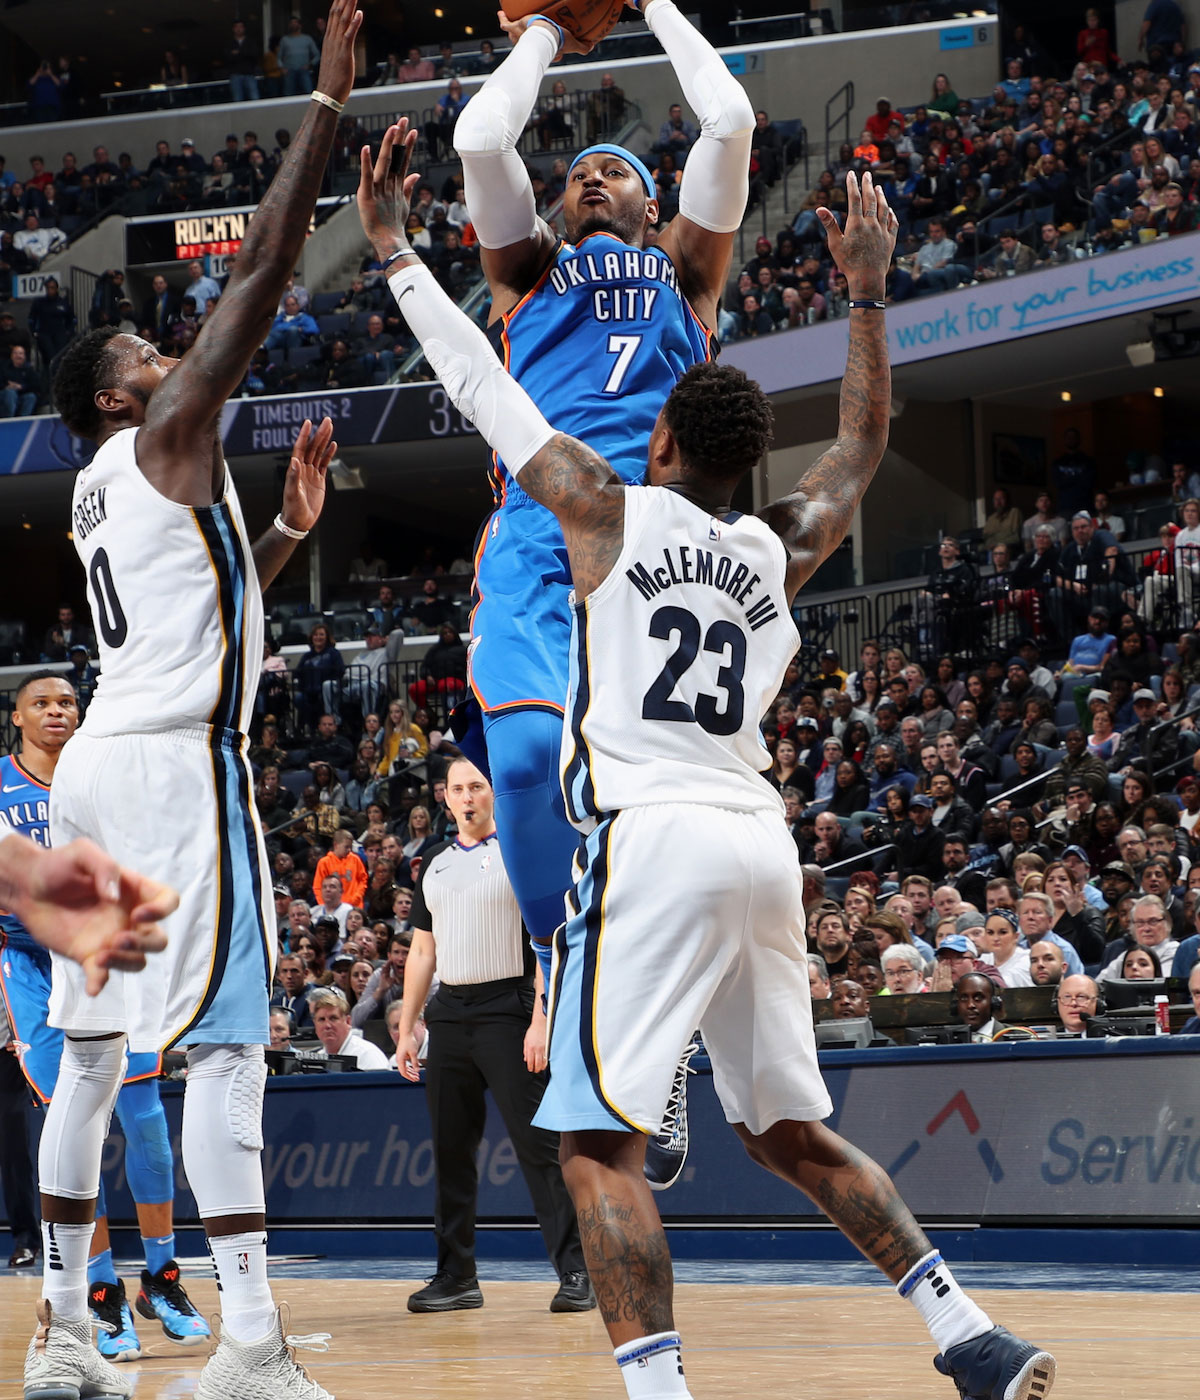 Carmelo Anthony #7 of the Oklahoma City Thunder shoots the ball against the Memphis Grizzlies on December 9, 2017 at FedExForum in Memphis, Tennessee.